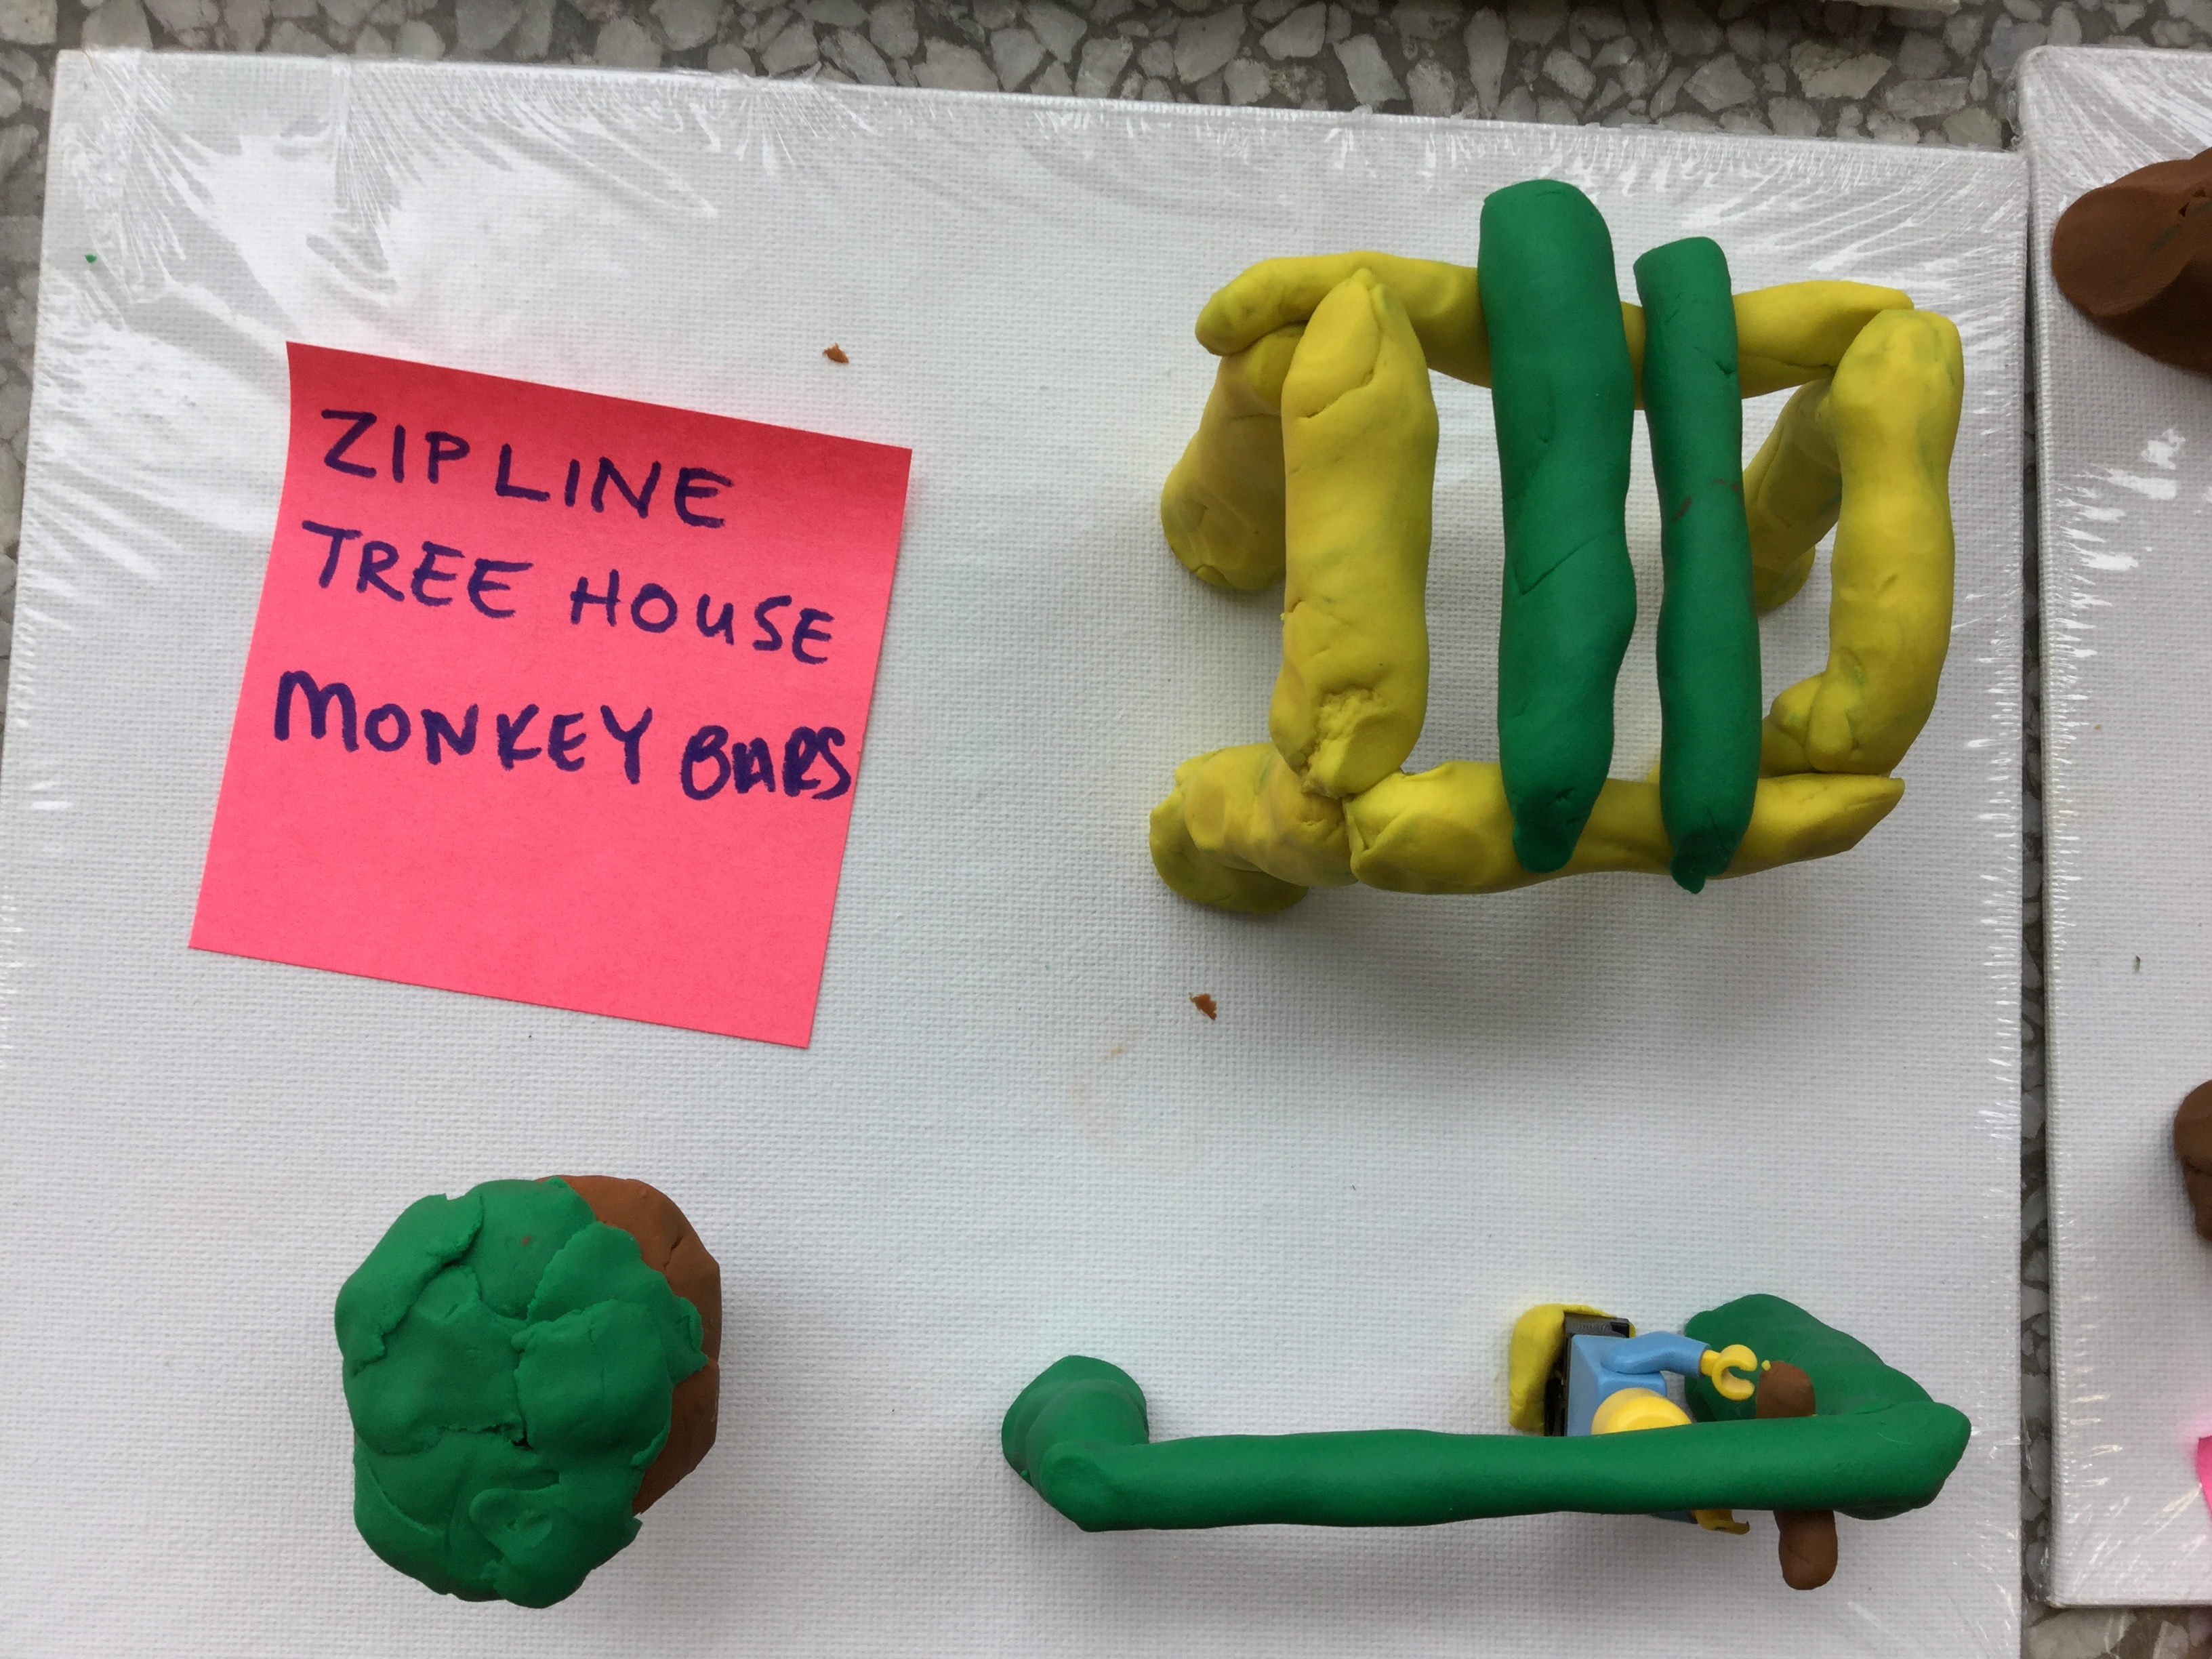 One of the clay sculptures students made that shows a zip line and a tree house.